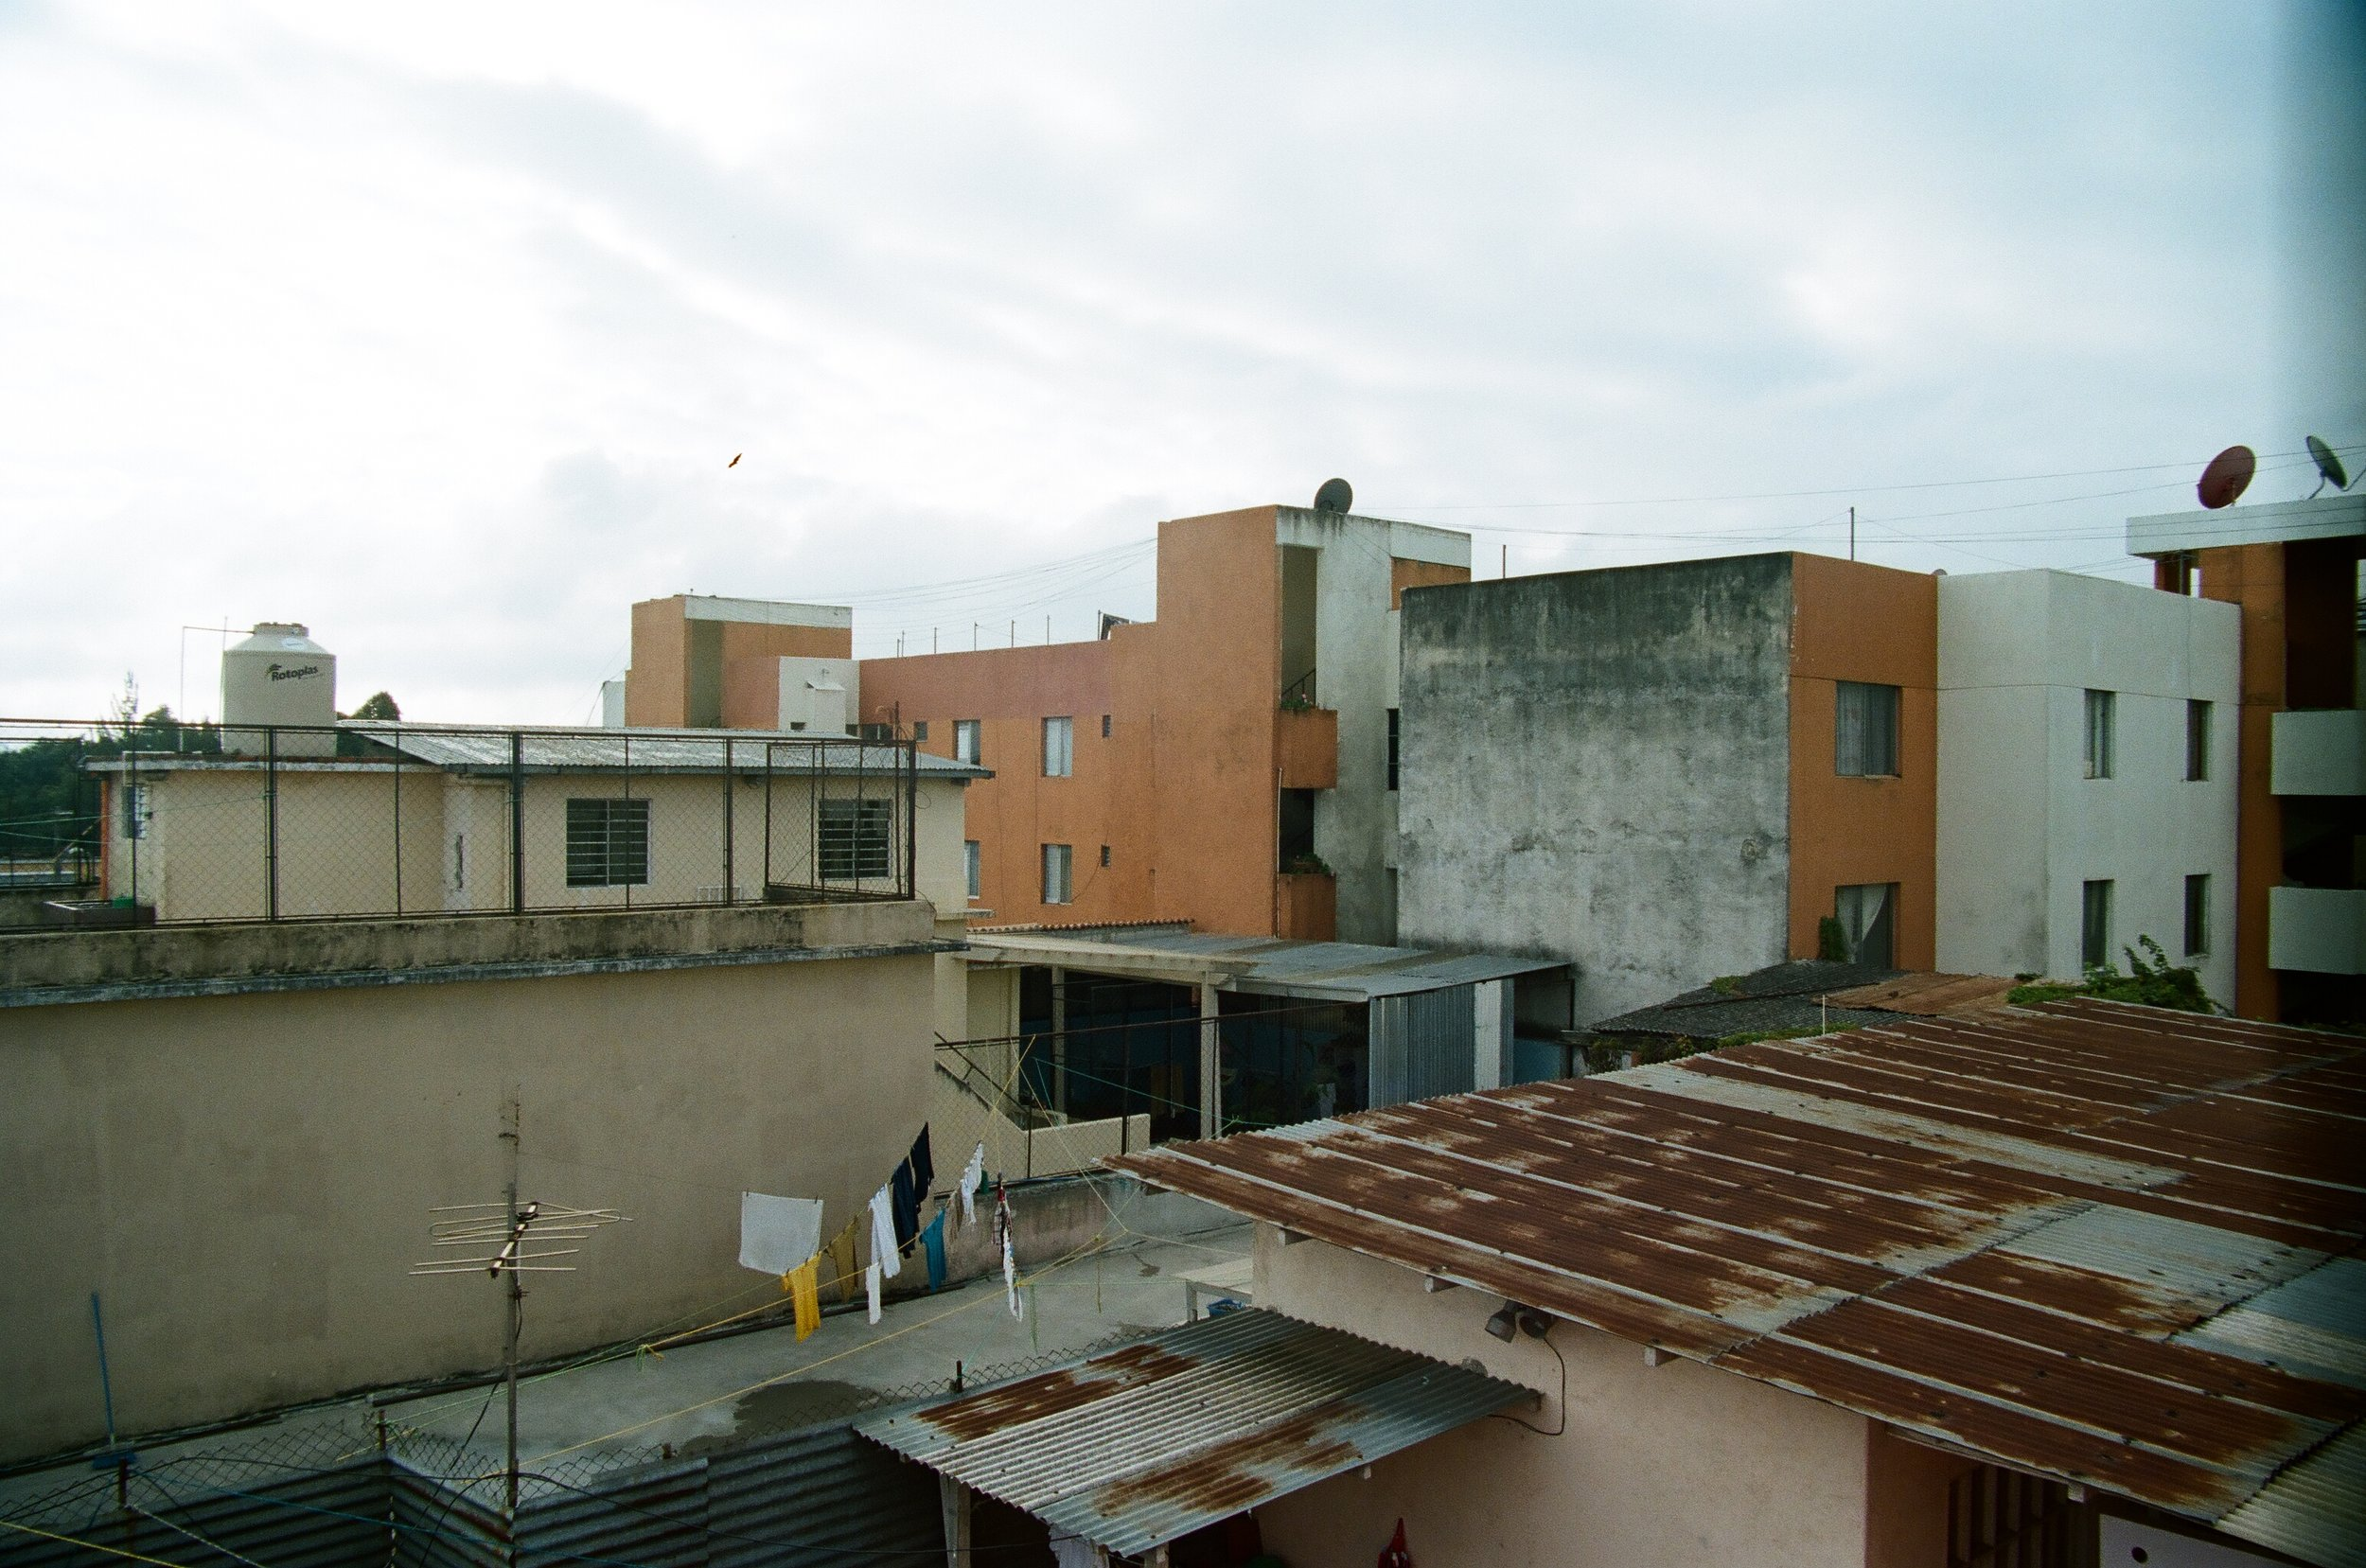 Our view from our amazing hostel in Guatemala City